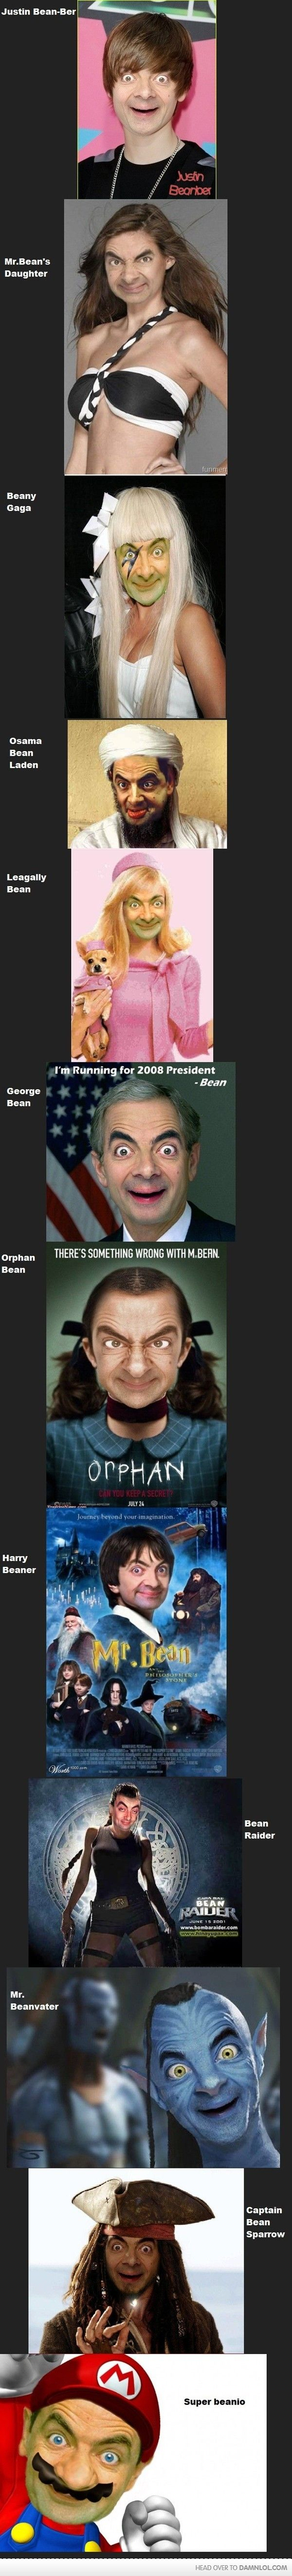 Mr. Bean :D.   I don't know why this made me laugh so much but it did! AJ